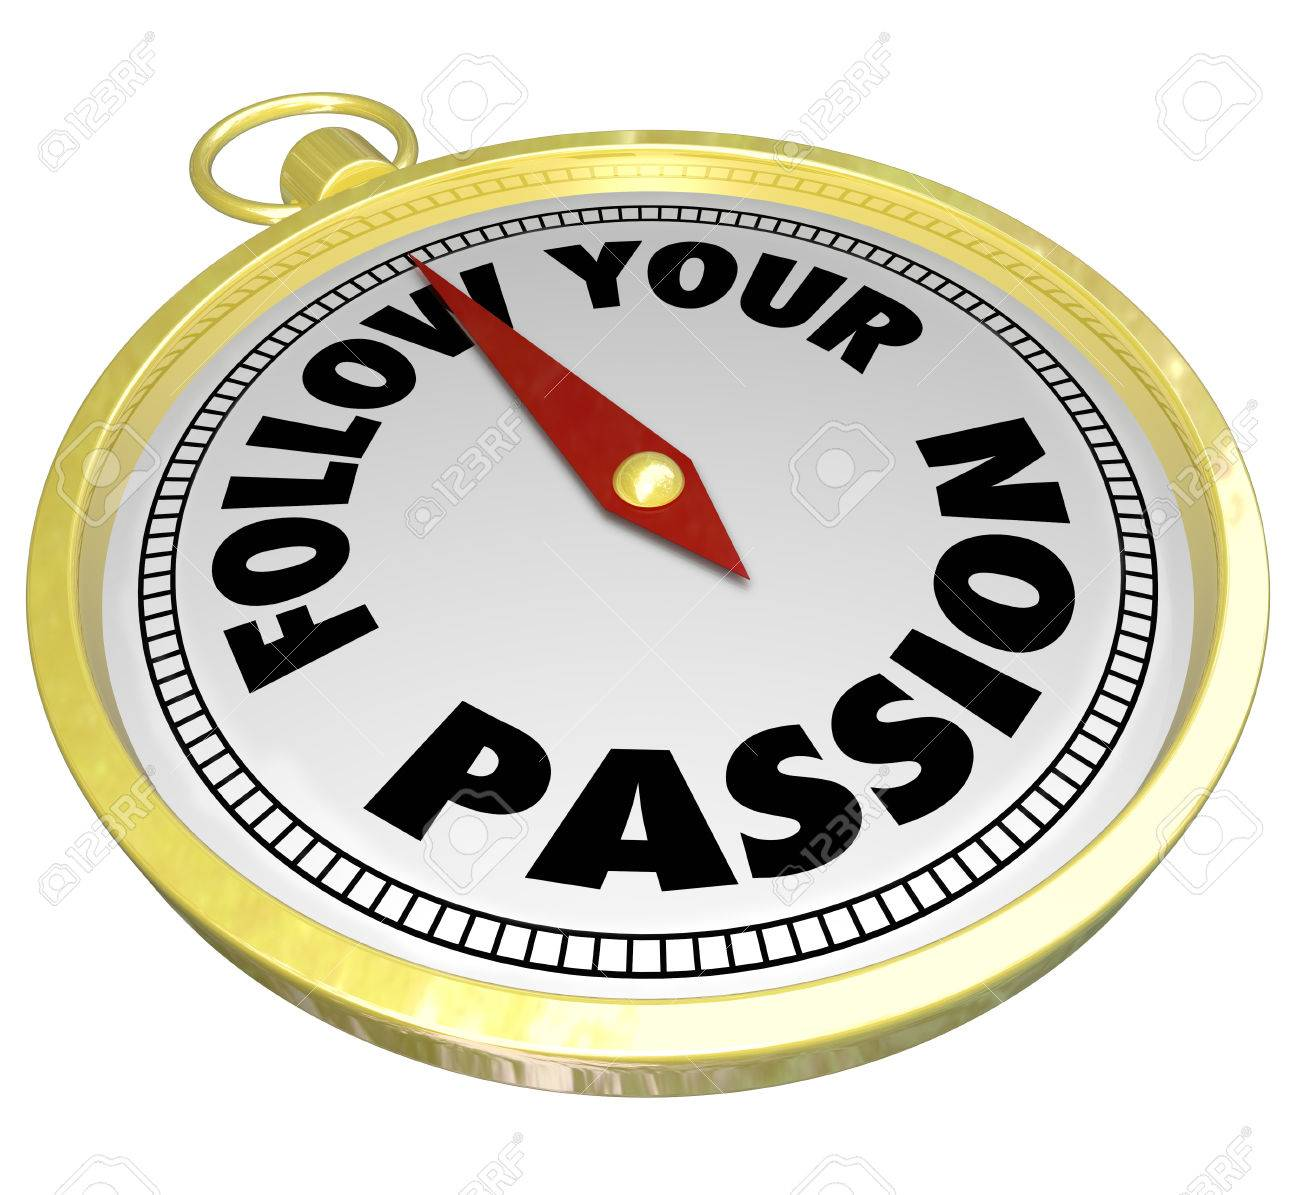 follow your passion words on a d golden compass directing and follow your passion words on a 3d golden compass directing and leading you to pursue your